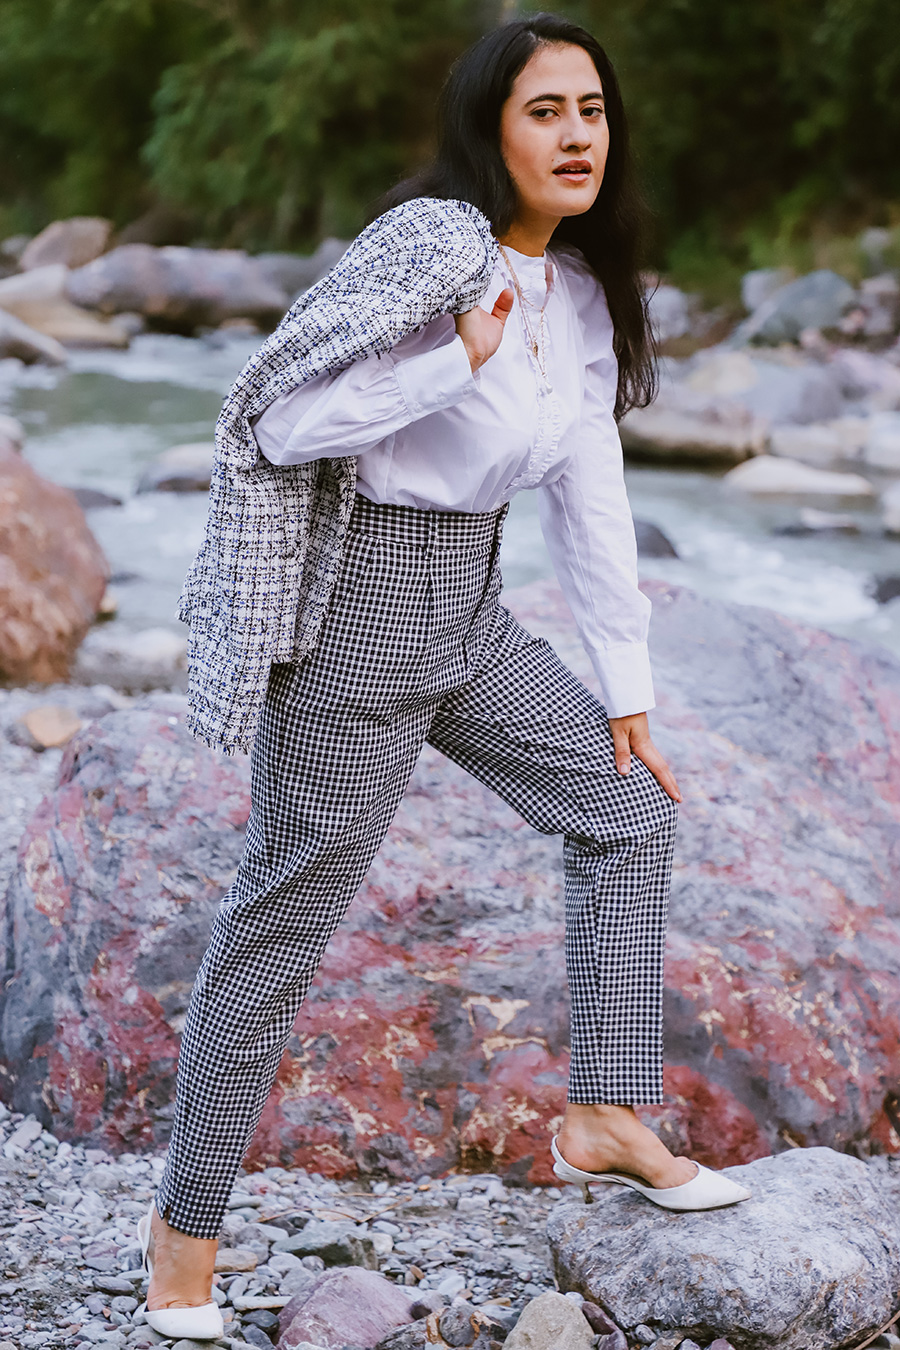 wearing women white button up shirt , gingham pant with tweed blazer and white heel for work outfit